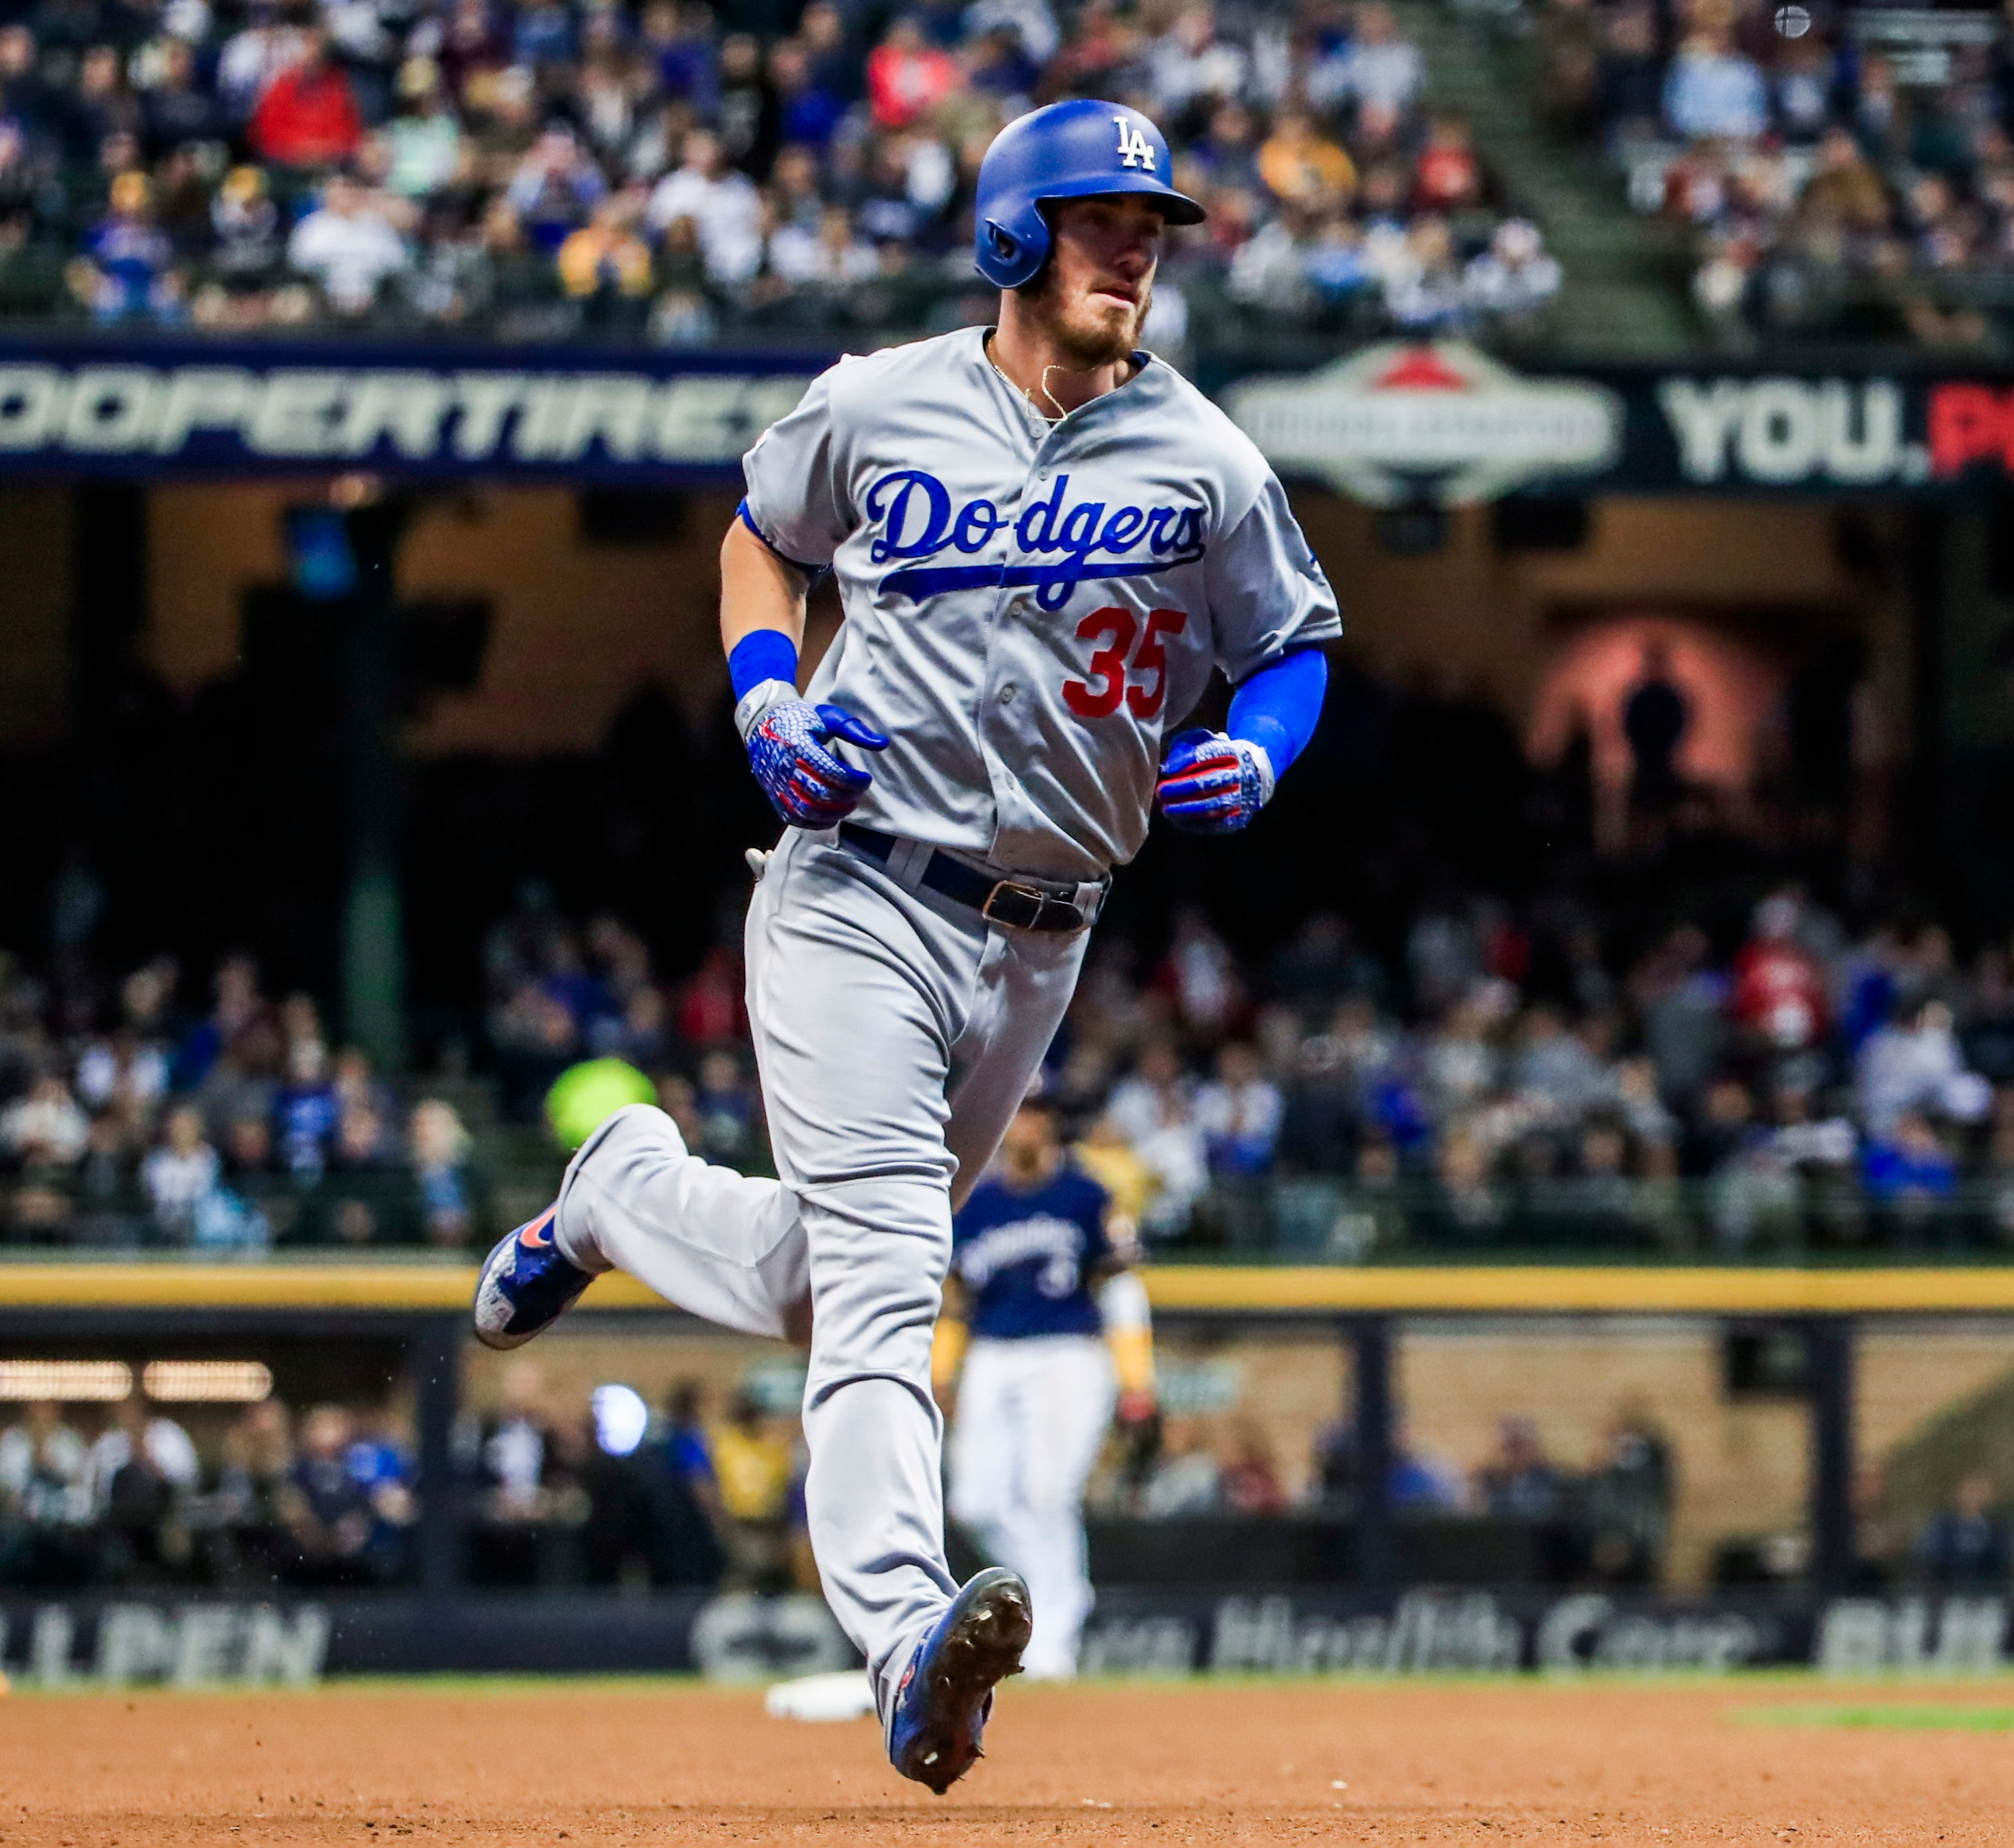 Dodgers right fielder Cody Bellinger rounds the bases after hitting a homer off Matt Albers in the sixth inning.